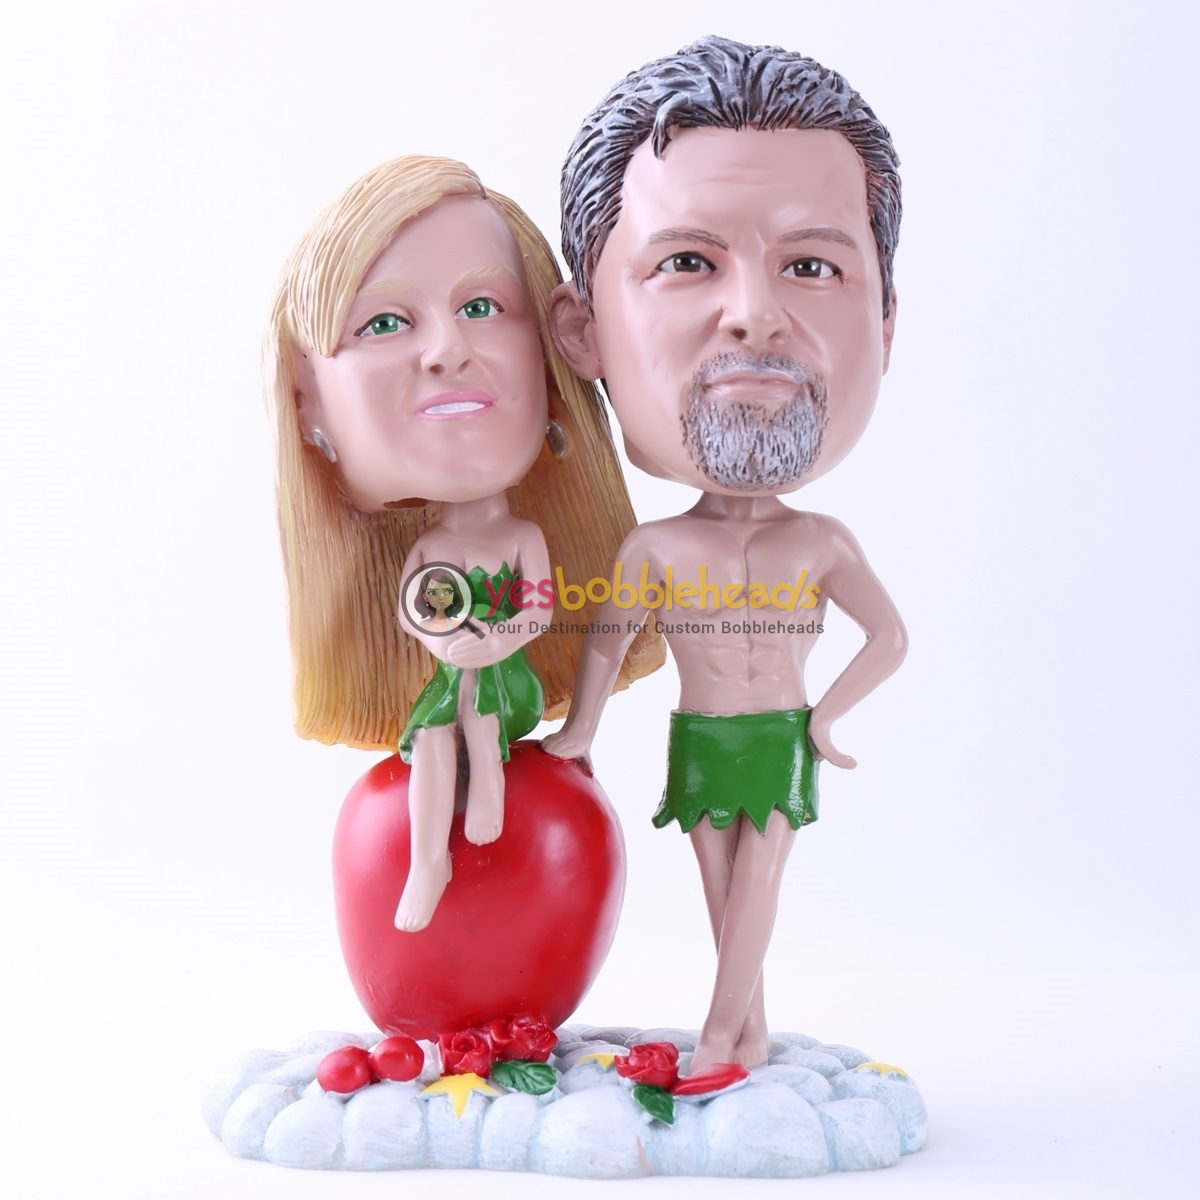 Picture of Custom Bobblehead Doll: Adam and Eve